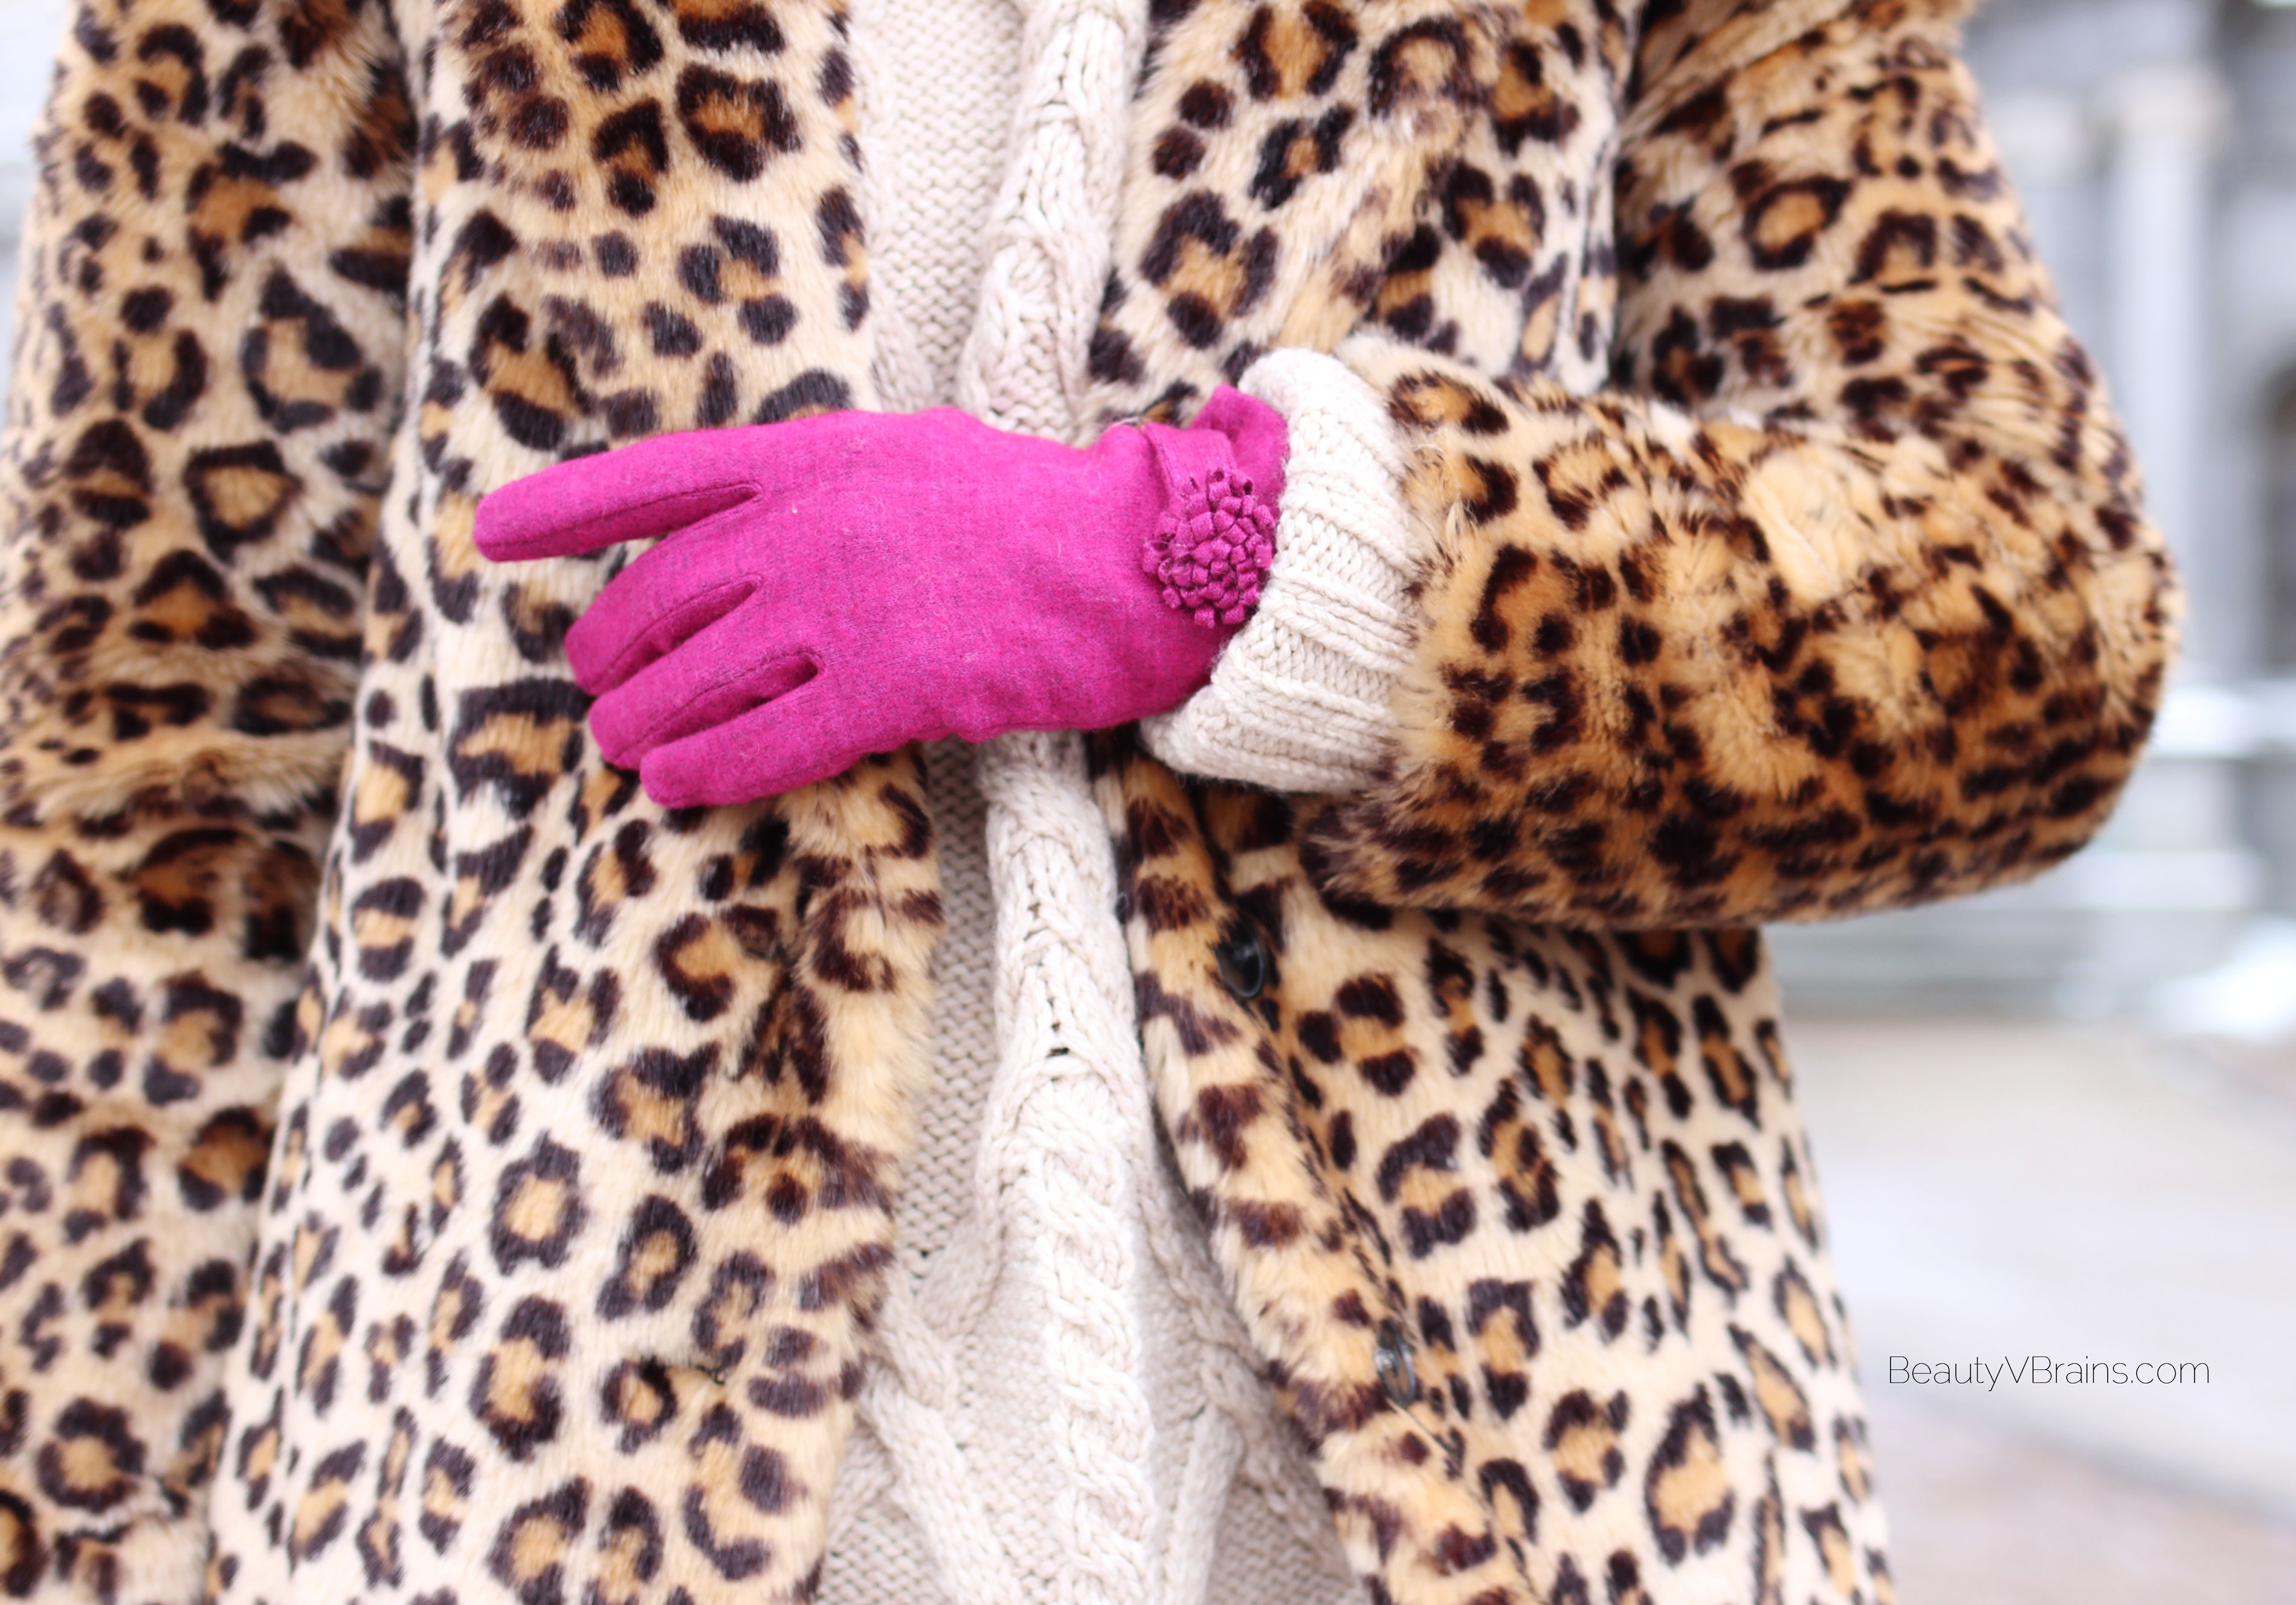 Hot pink pom pom gloves